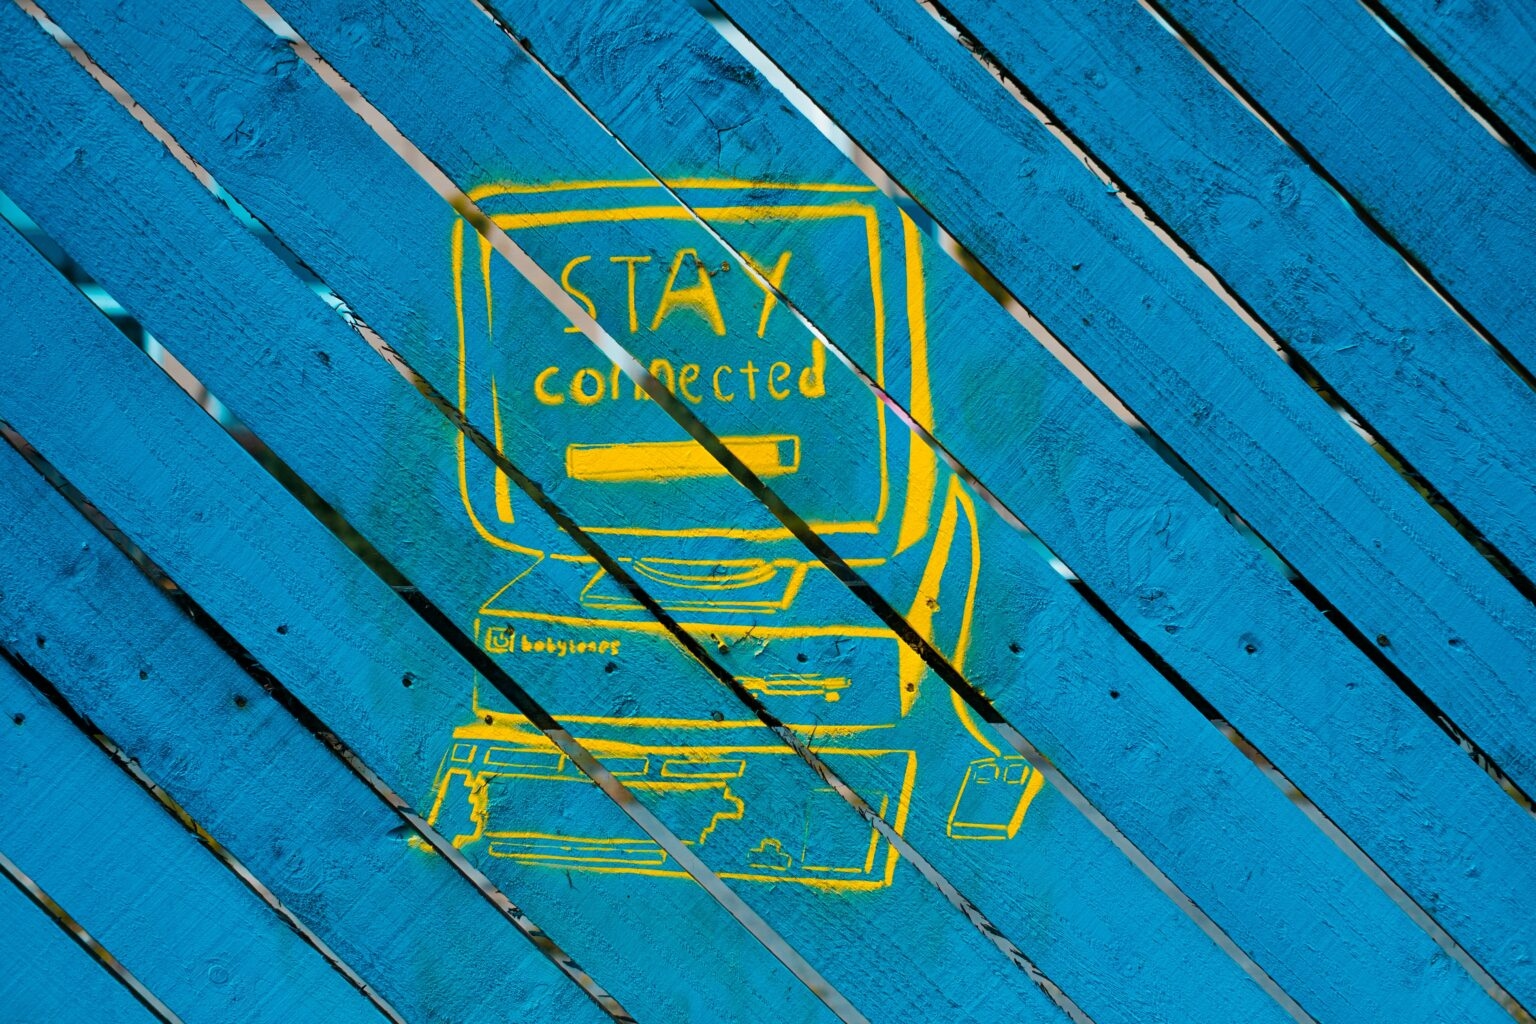 Stay connected painting on wood slats